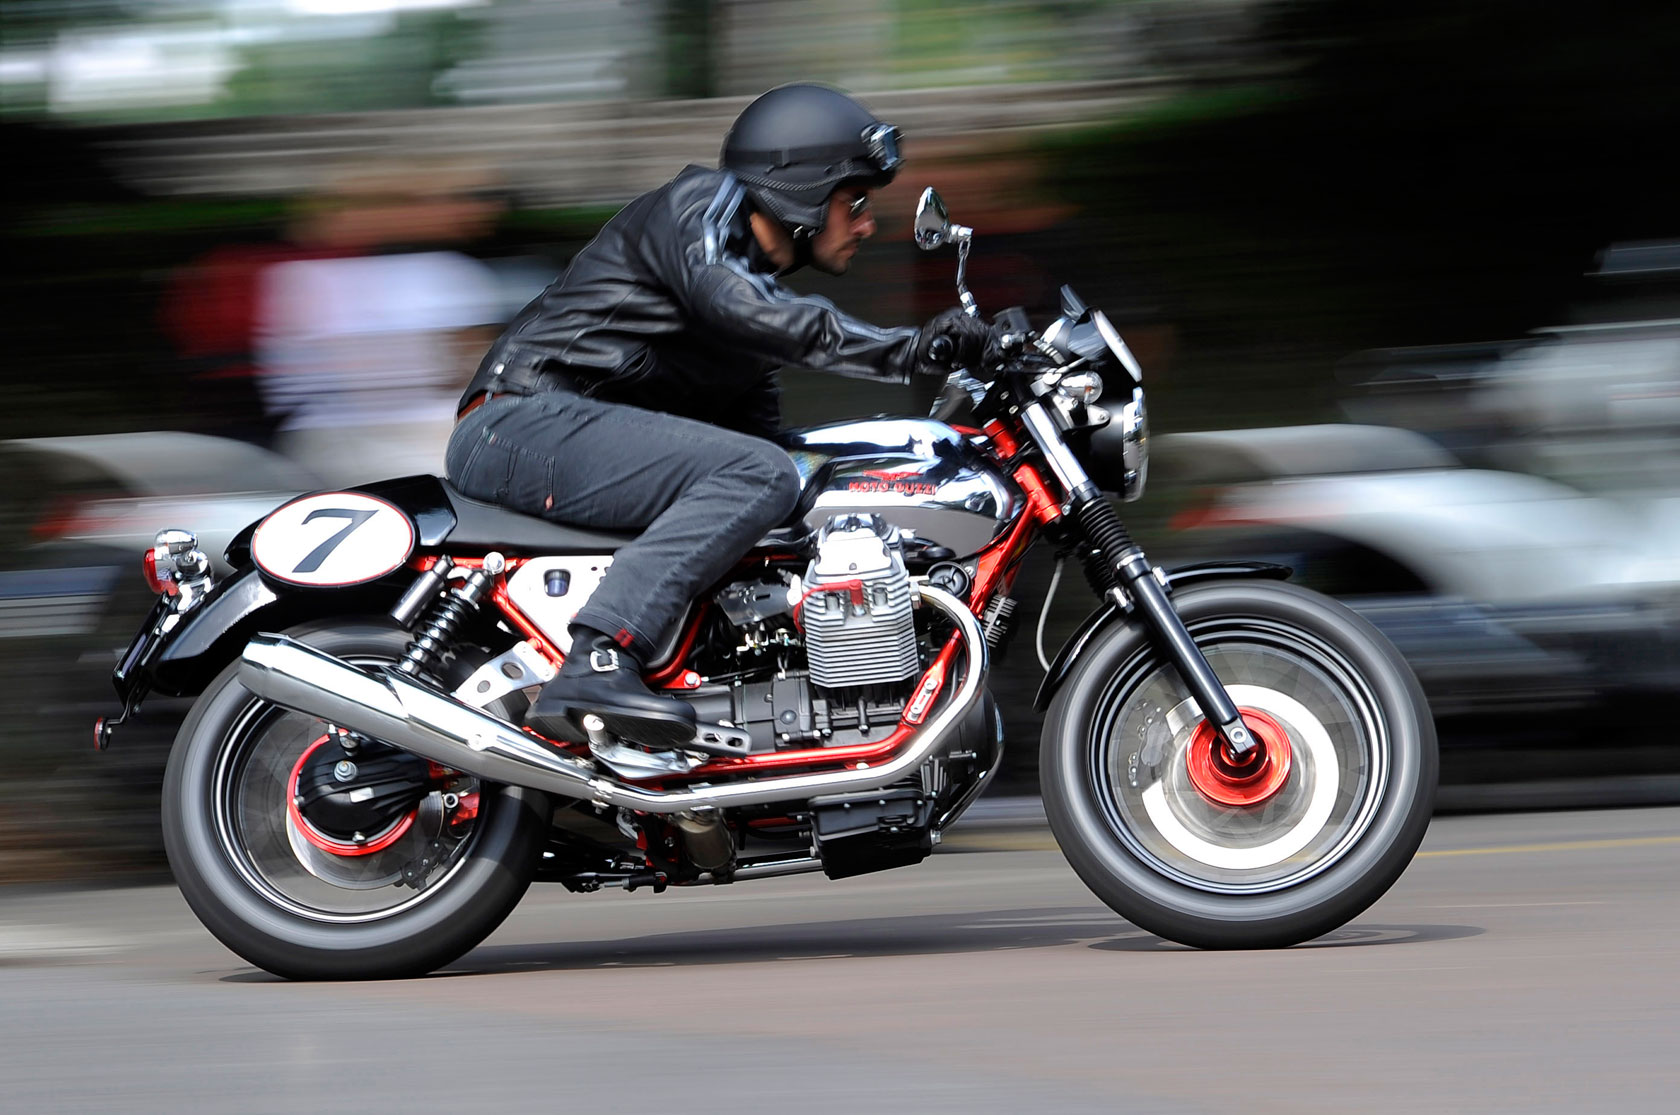 Moto Guzzi V7 Racer Limited Edition 2011 images #109588